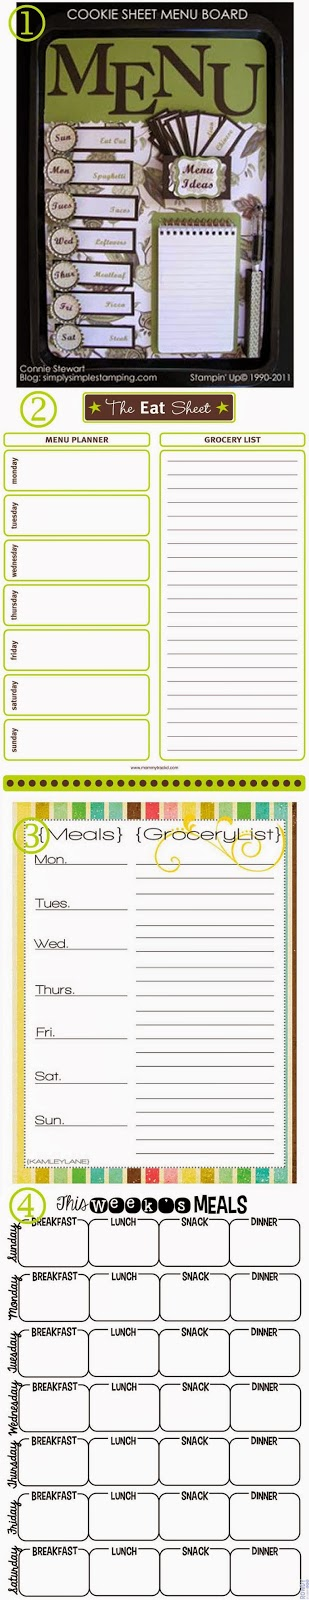 http://ichoosejoy2day.blogspot.com/2014/09/organizing-time-weekly-meal-planning.html